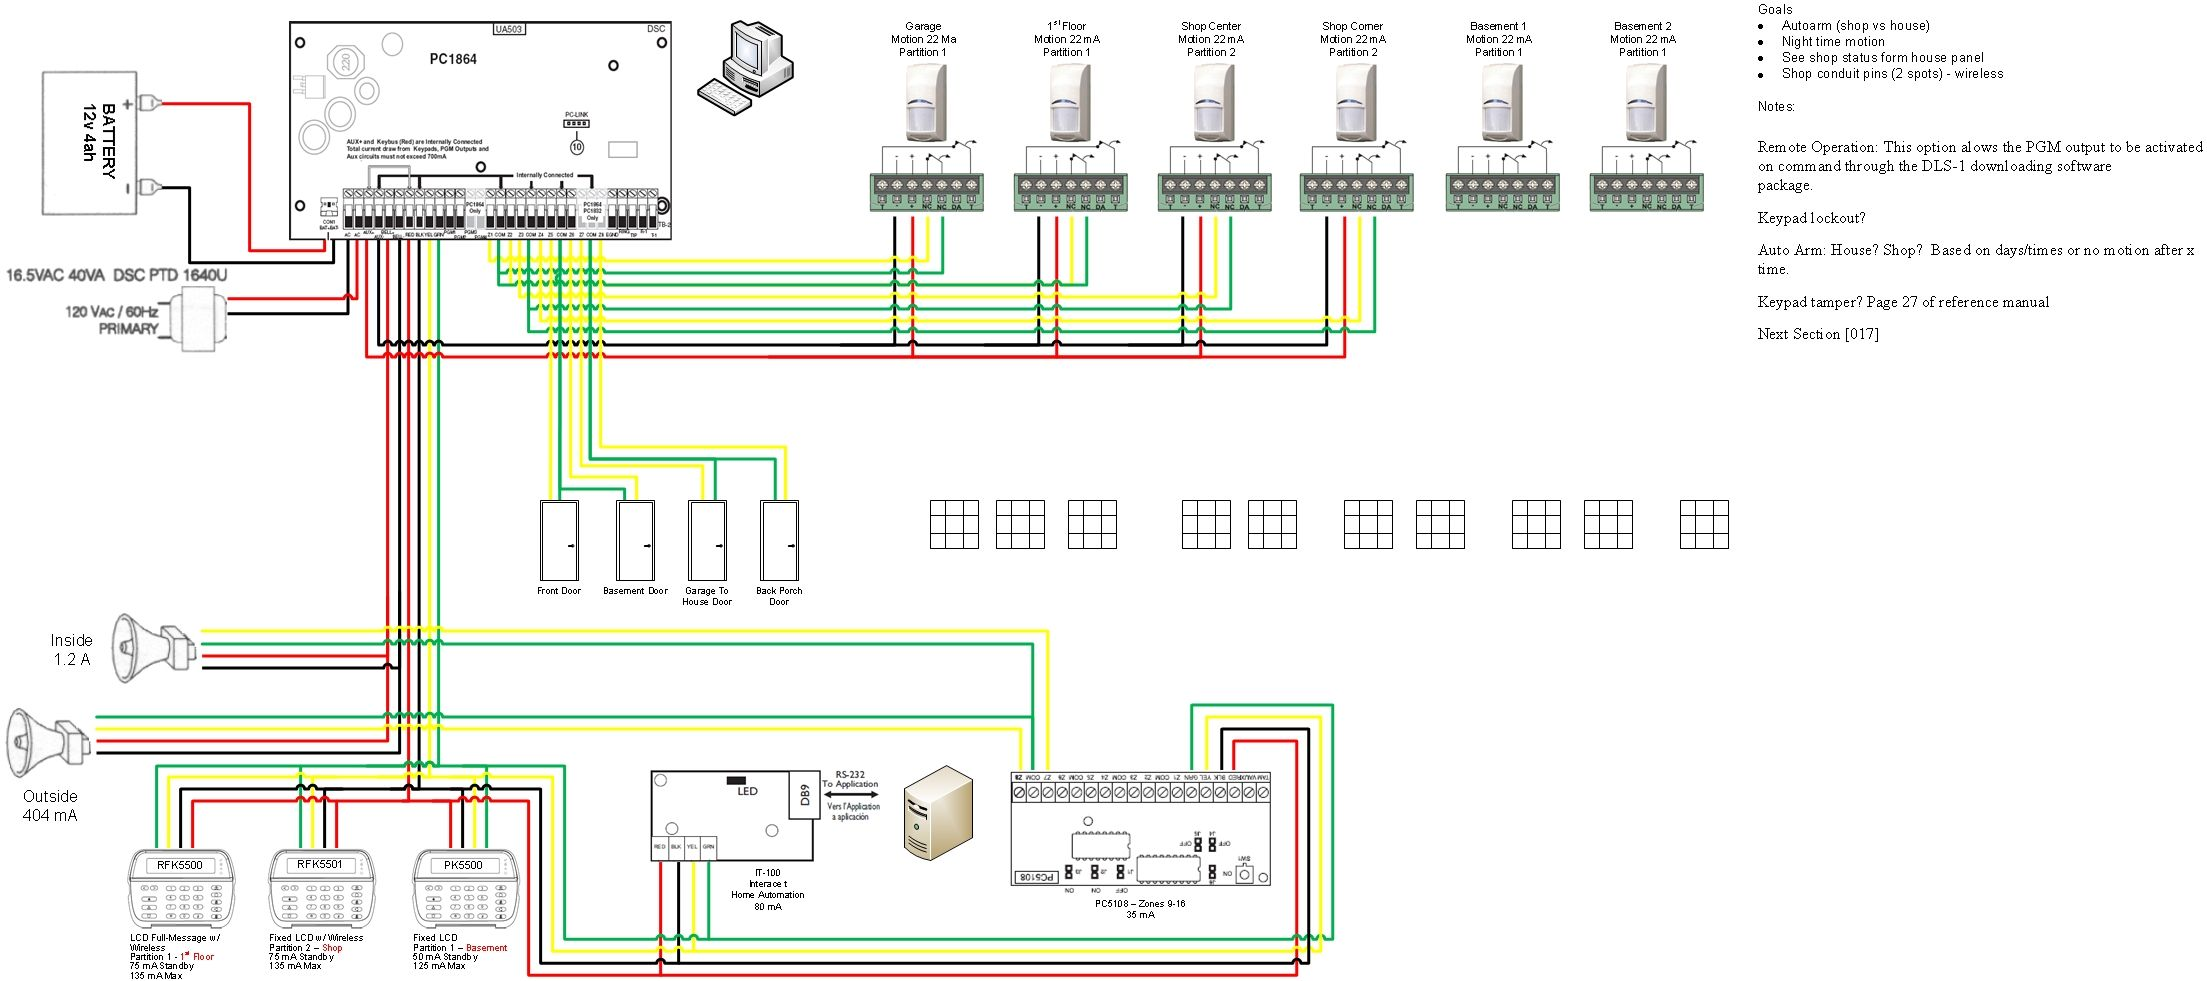 Vivint Home Security Wiring Diagram - Wiring Diagrams DataUssel